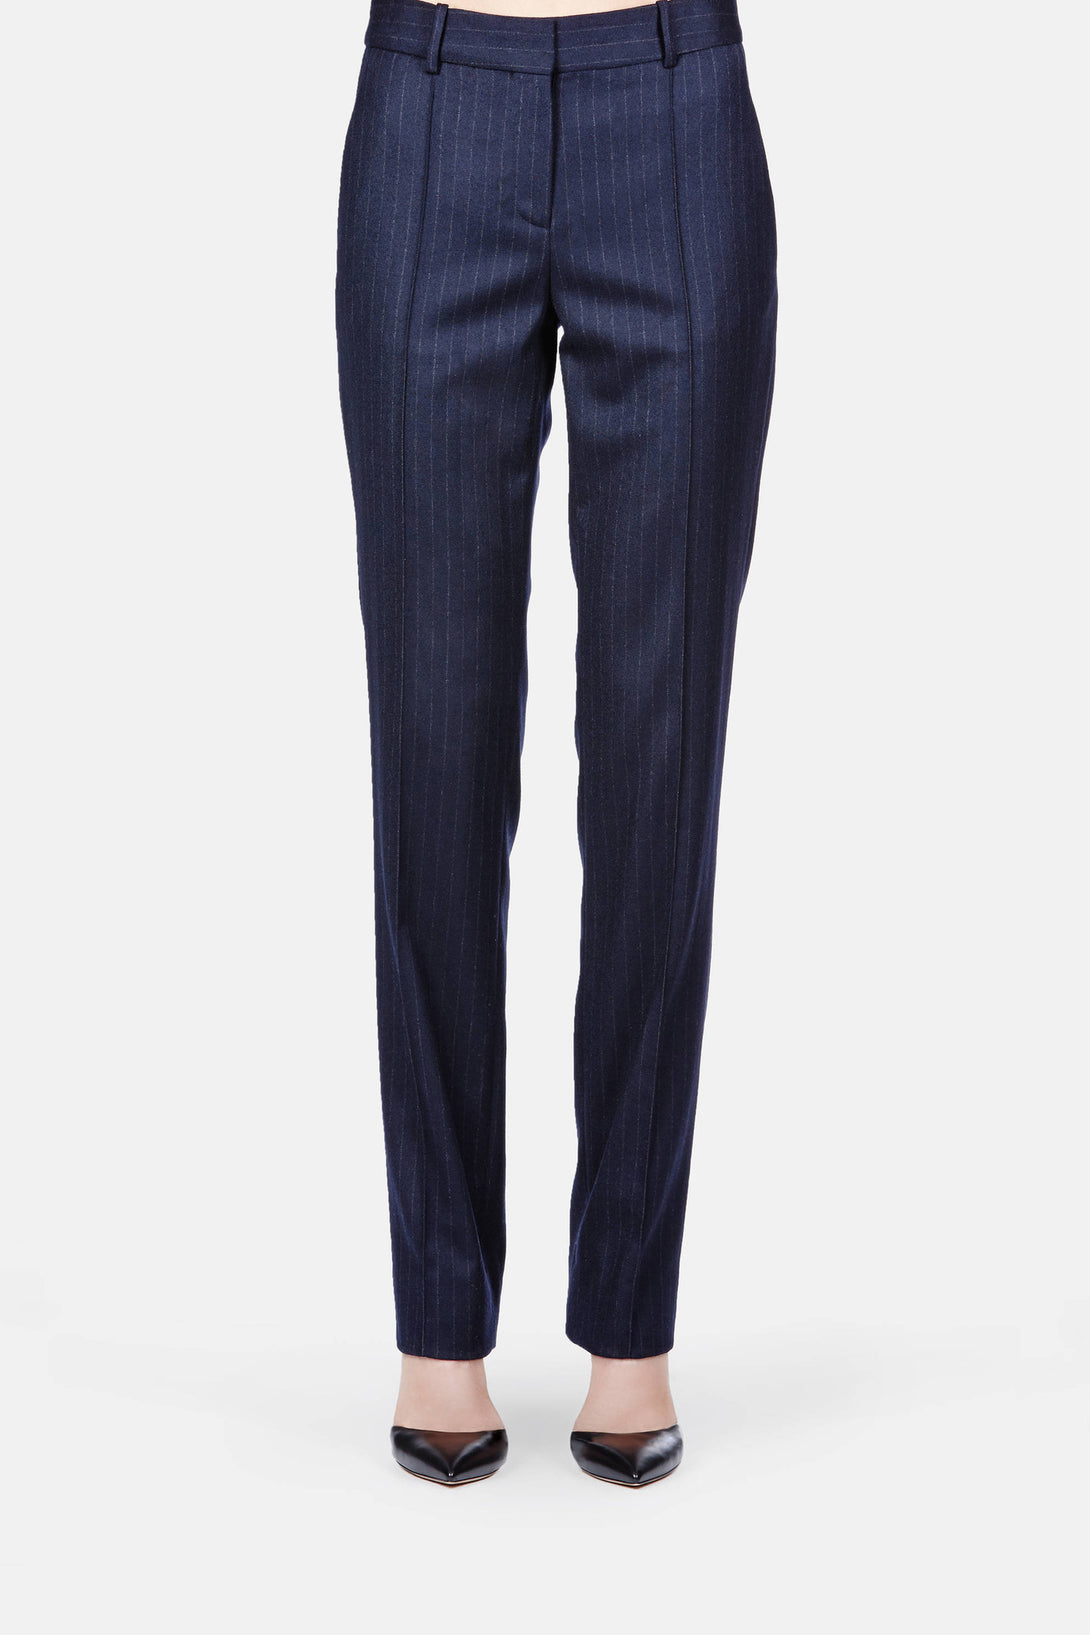 Trouser 02 Relaxed Long Leg Trouser - Navy Pinstripe